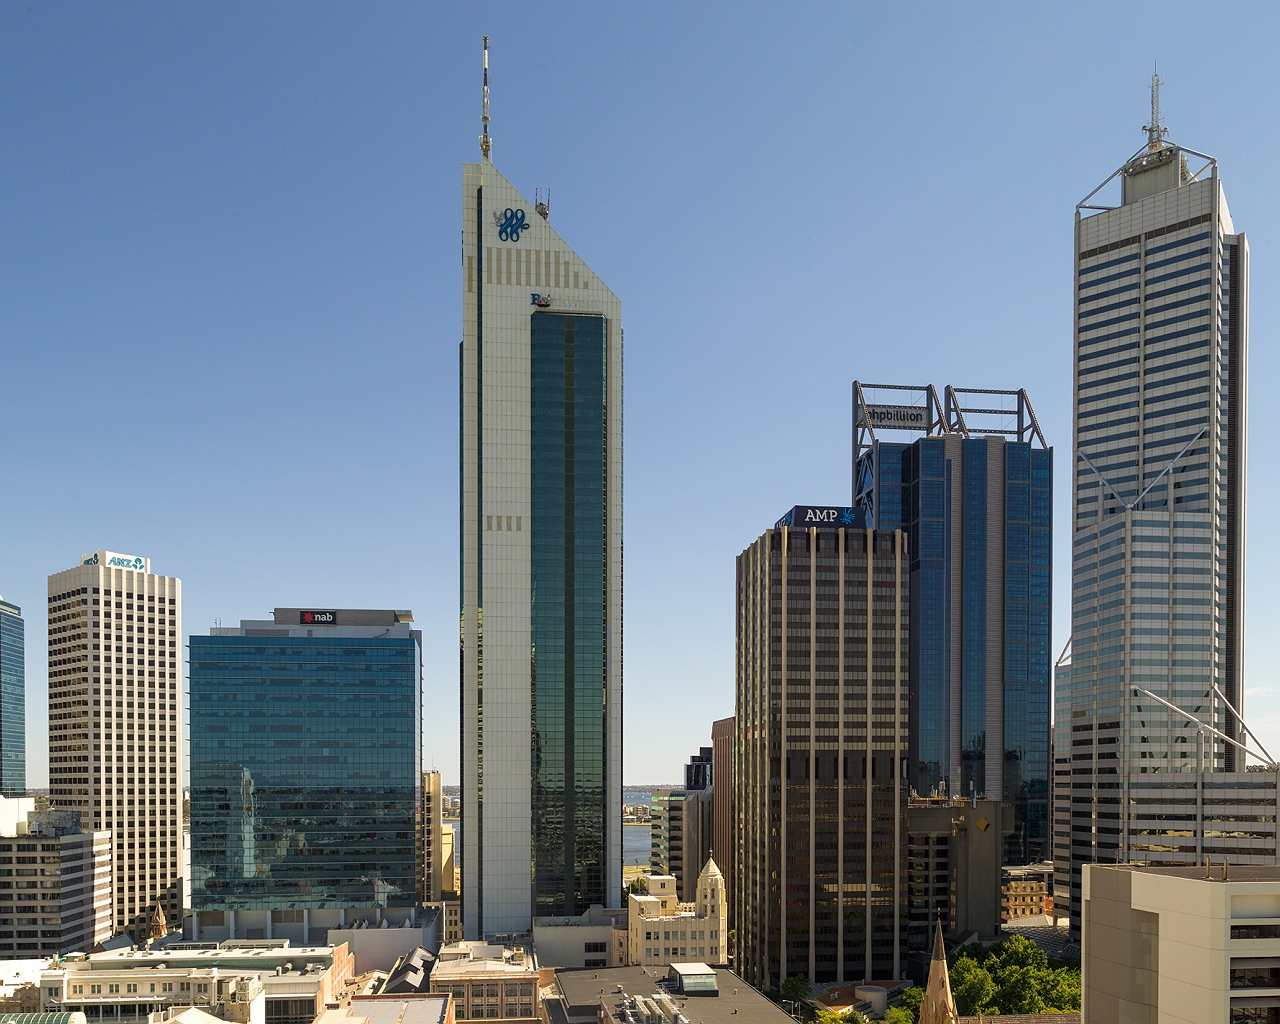 open_house_perth_skyscrapers_2014_39